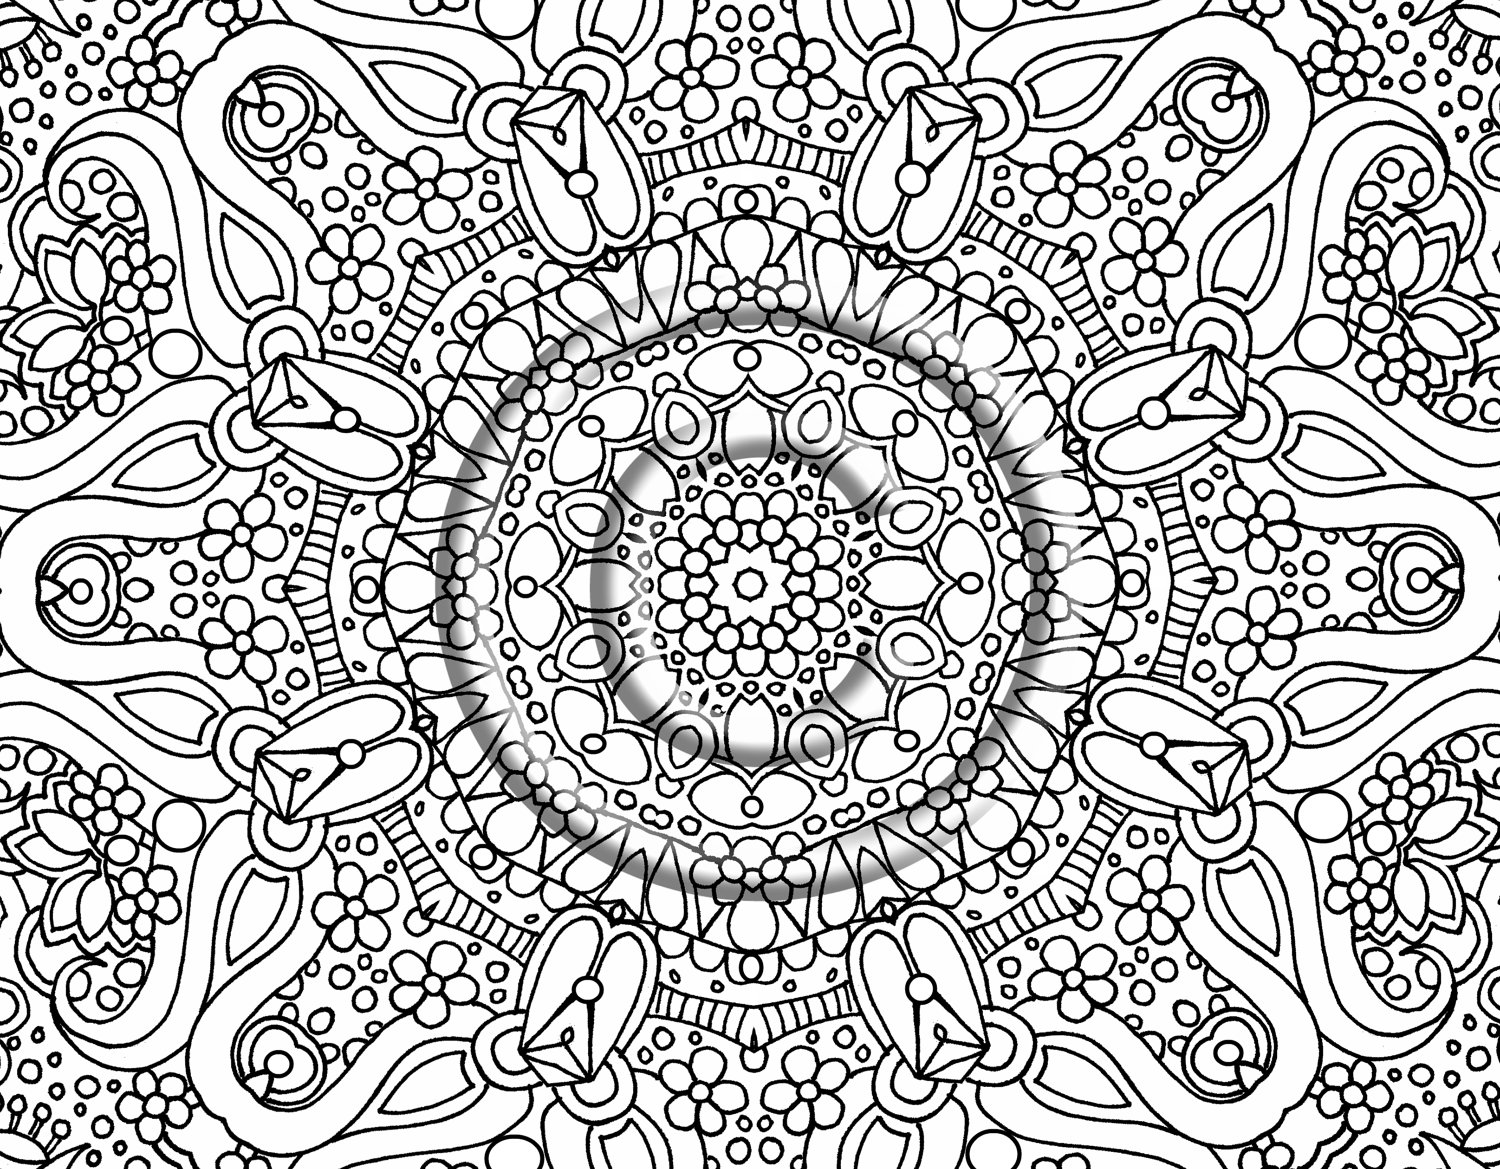 abstract flower coloring pages flowers coloring pages printable flower coloring pages coloring abstract pages flower